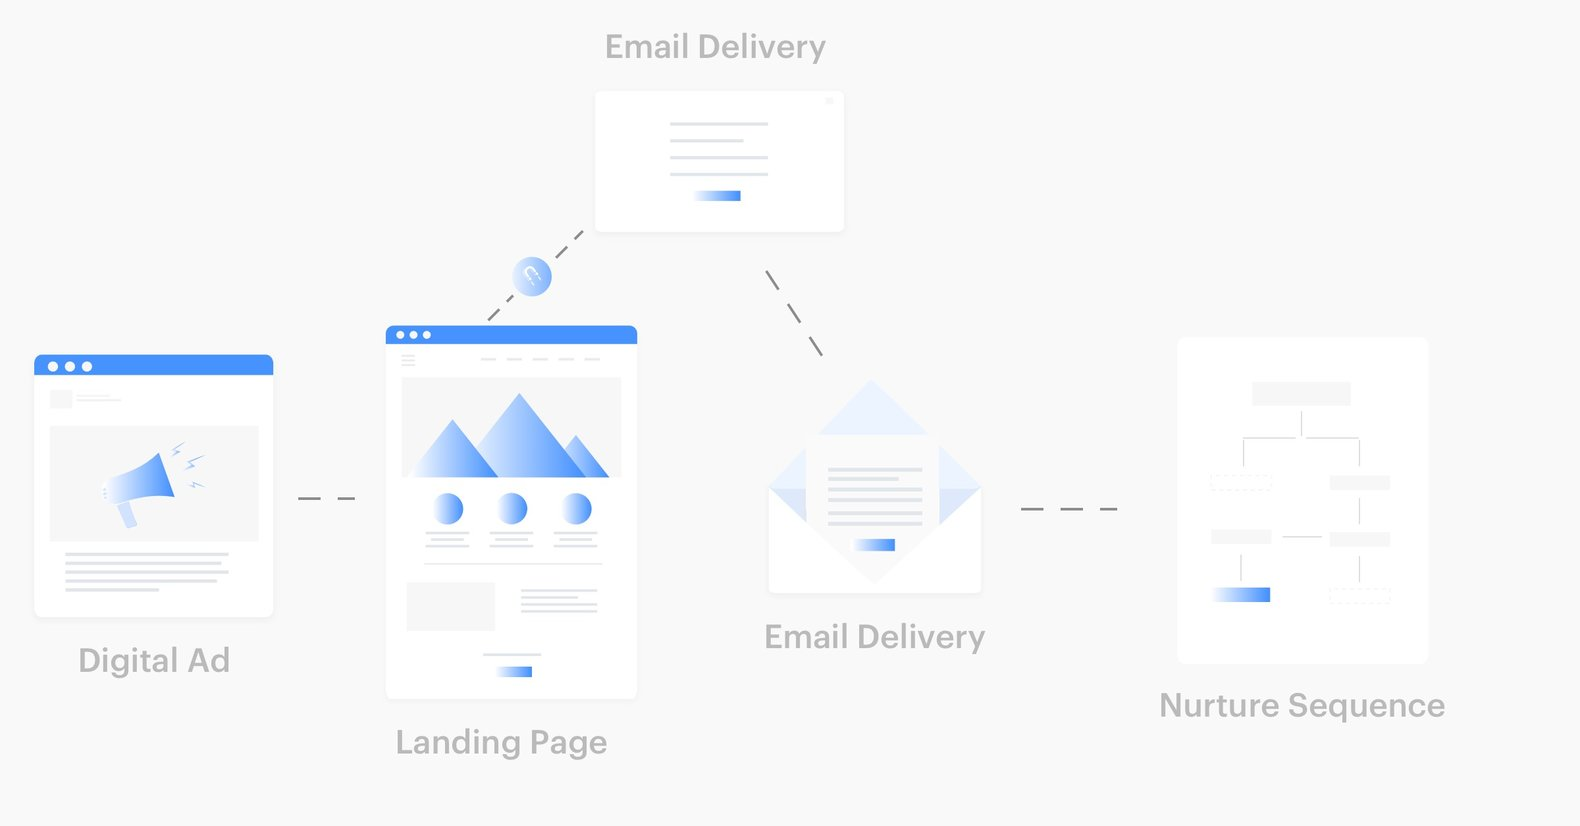 Landing page definition diagram